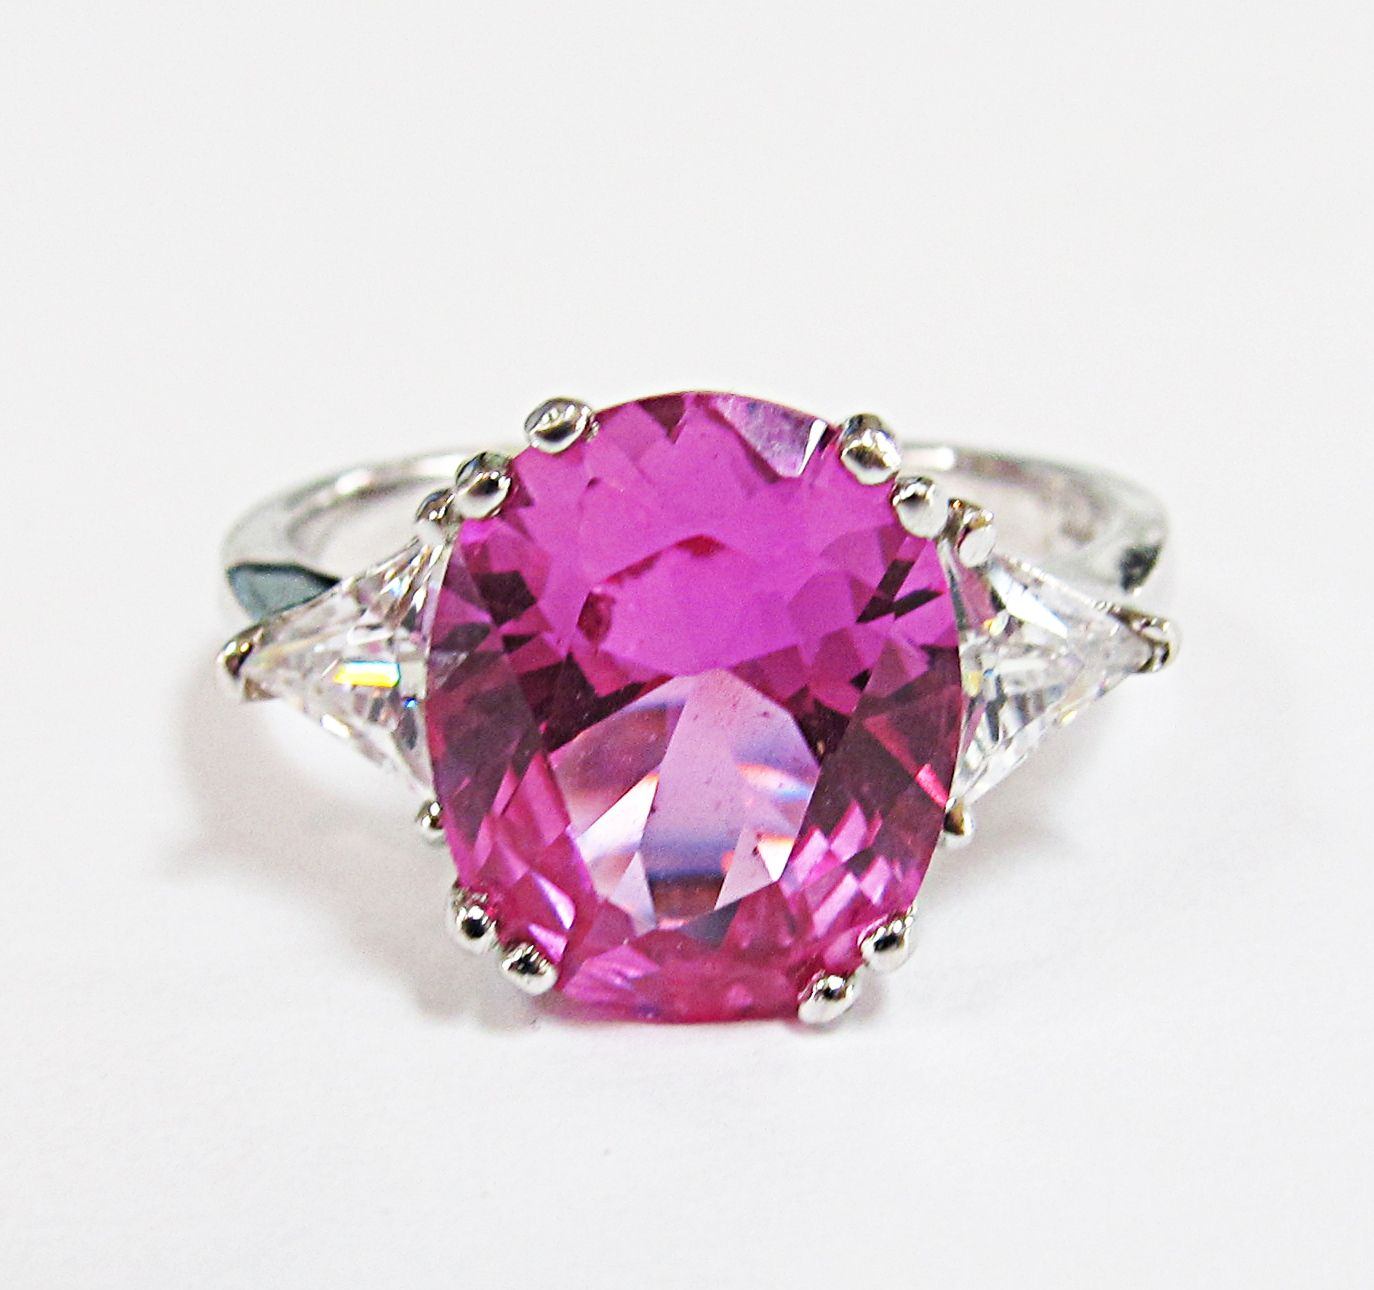 Vintage Sterling Silver Synthetic Pink Sapphire & CZ Ring $20 ...